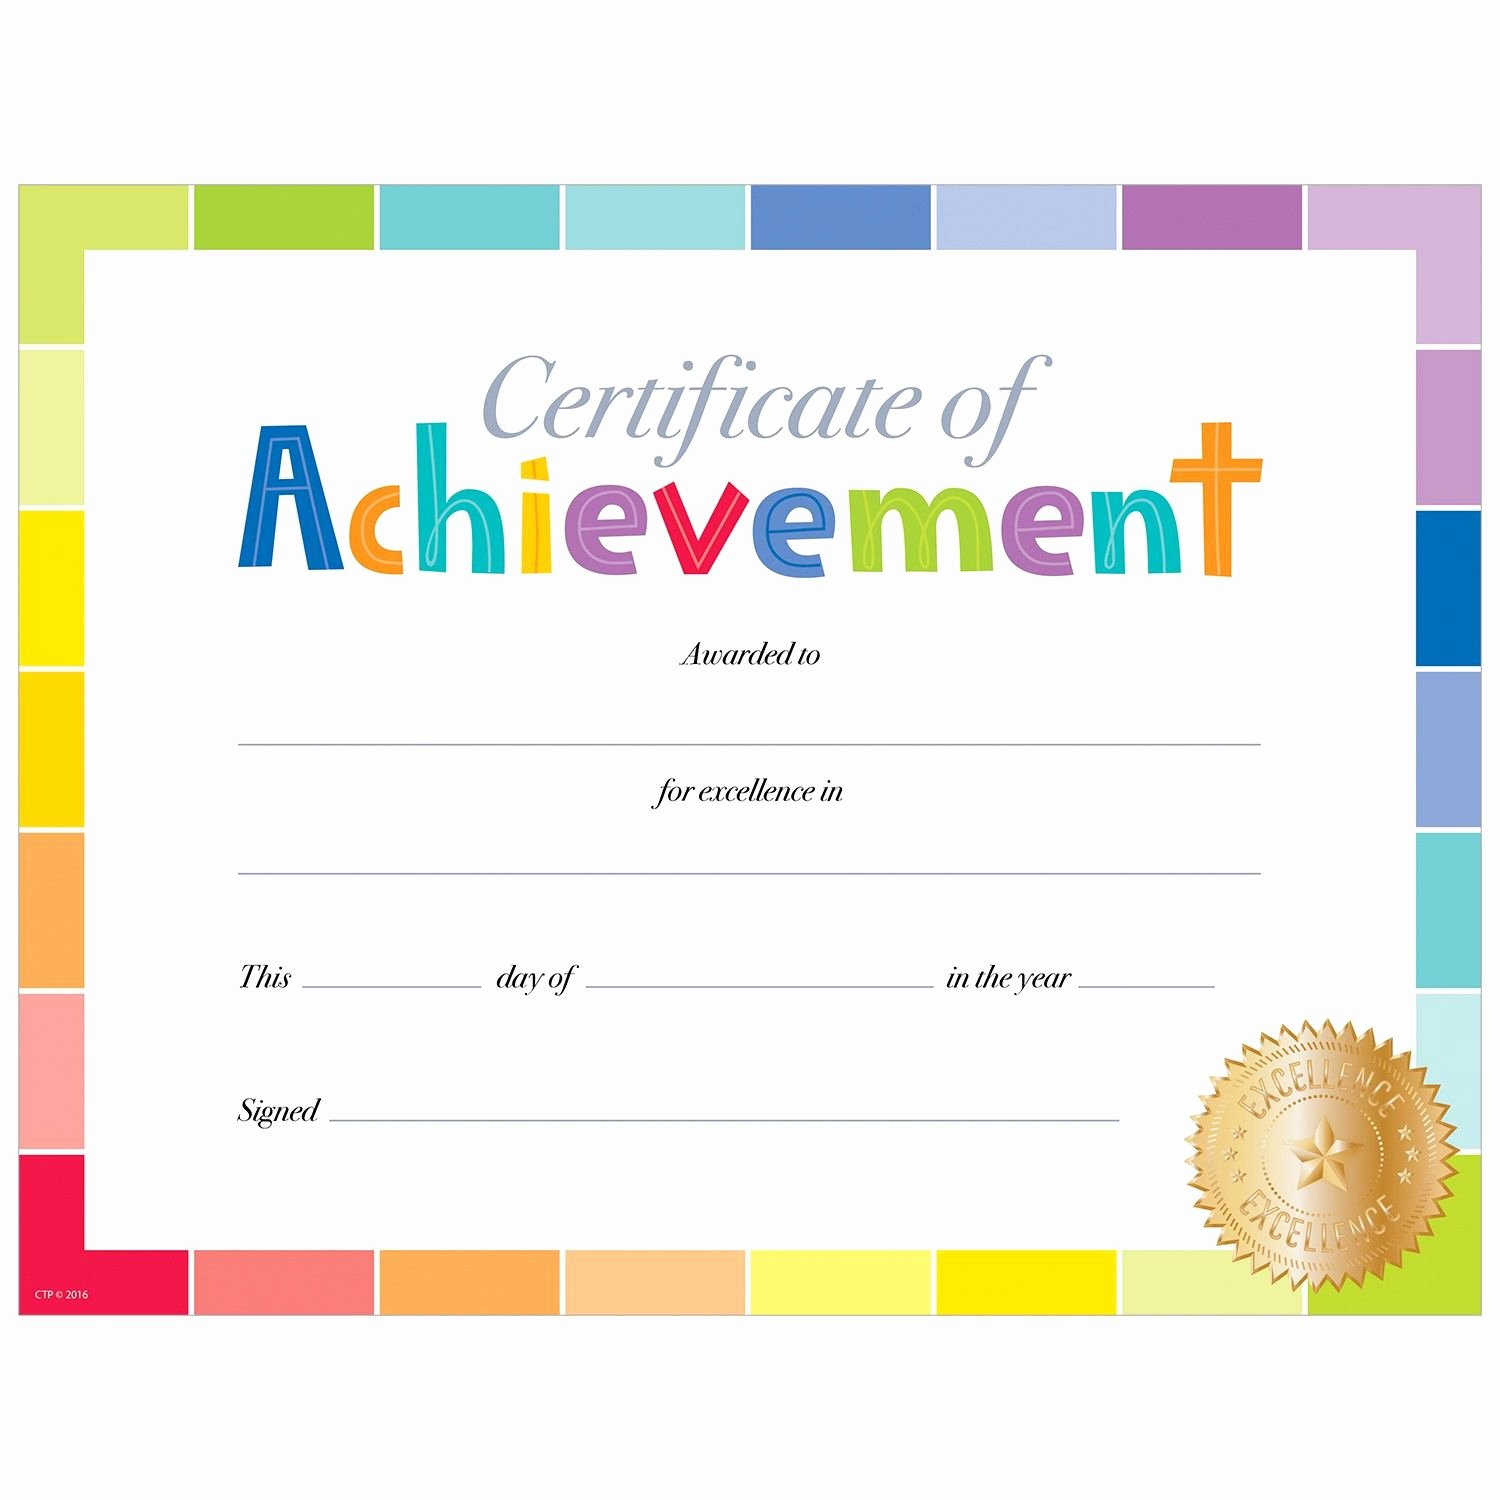 Award Ribbon Template Printable Fresh Pin by Danit Levi On מסגרות